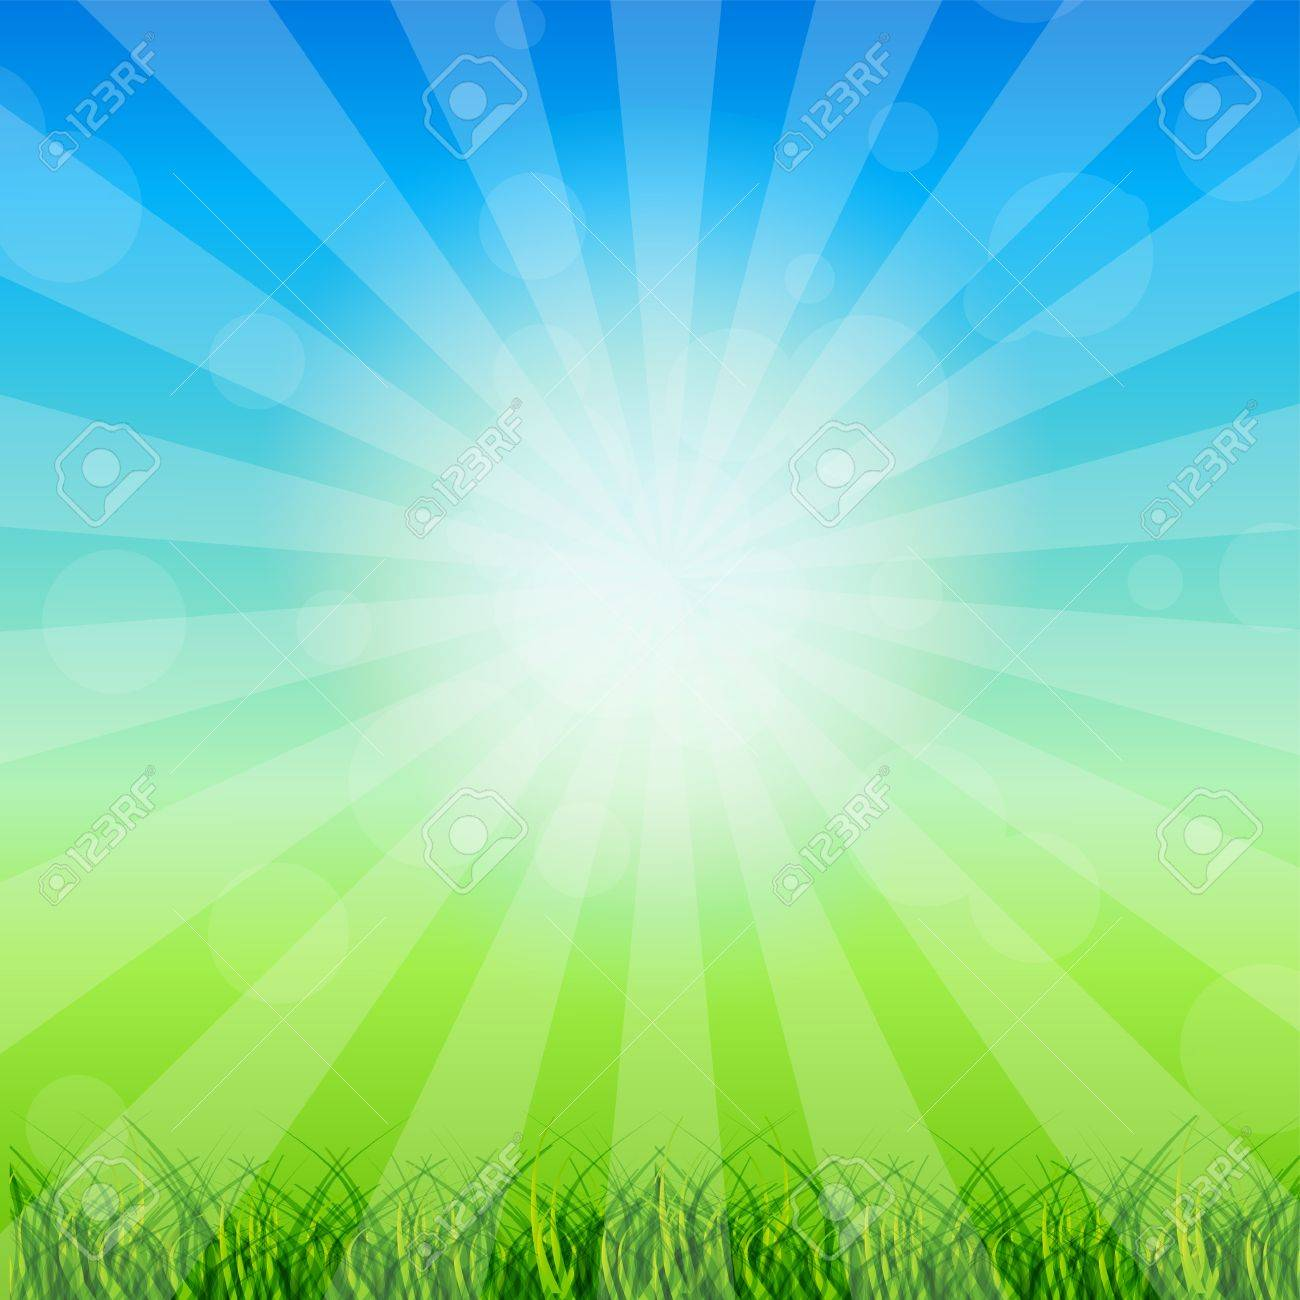 Summer Abstract Background with grass and chamomile against sunny sky  Vector illustration Stock Vector - 15282338